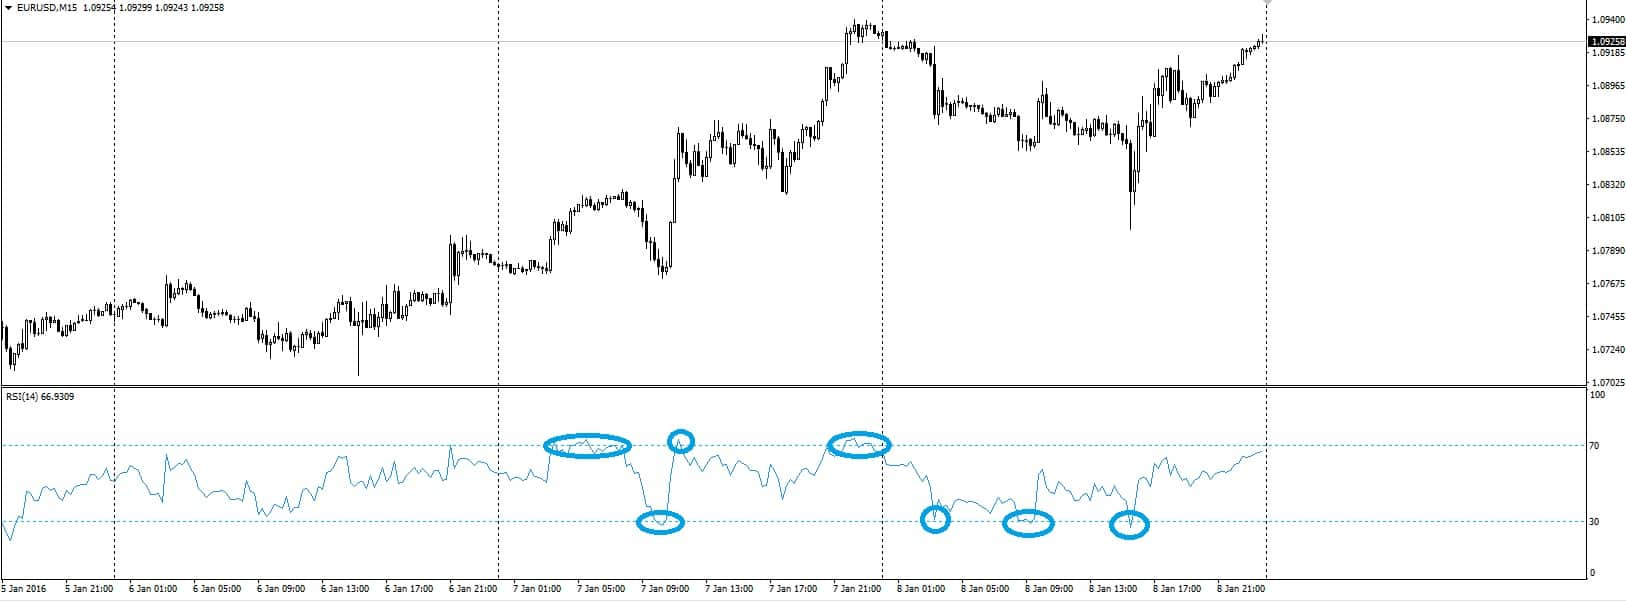 RSI overbought and oversold levels